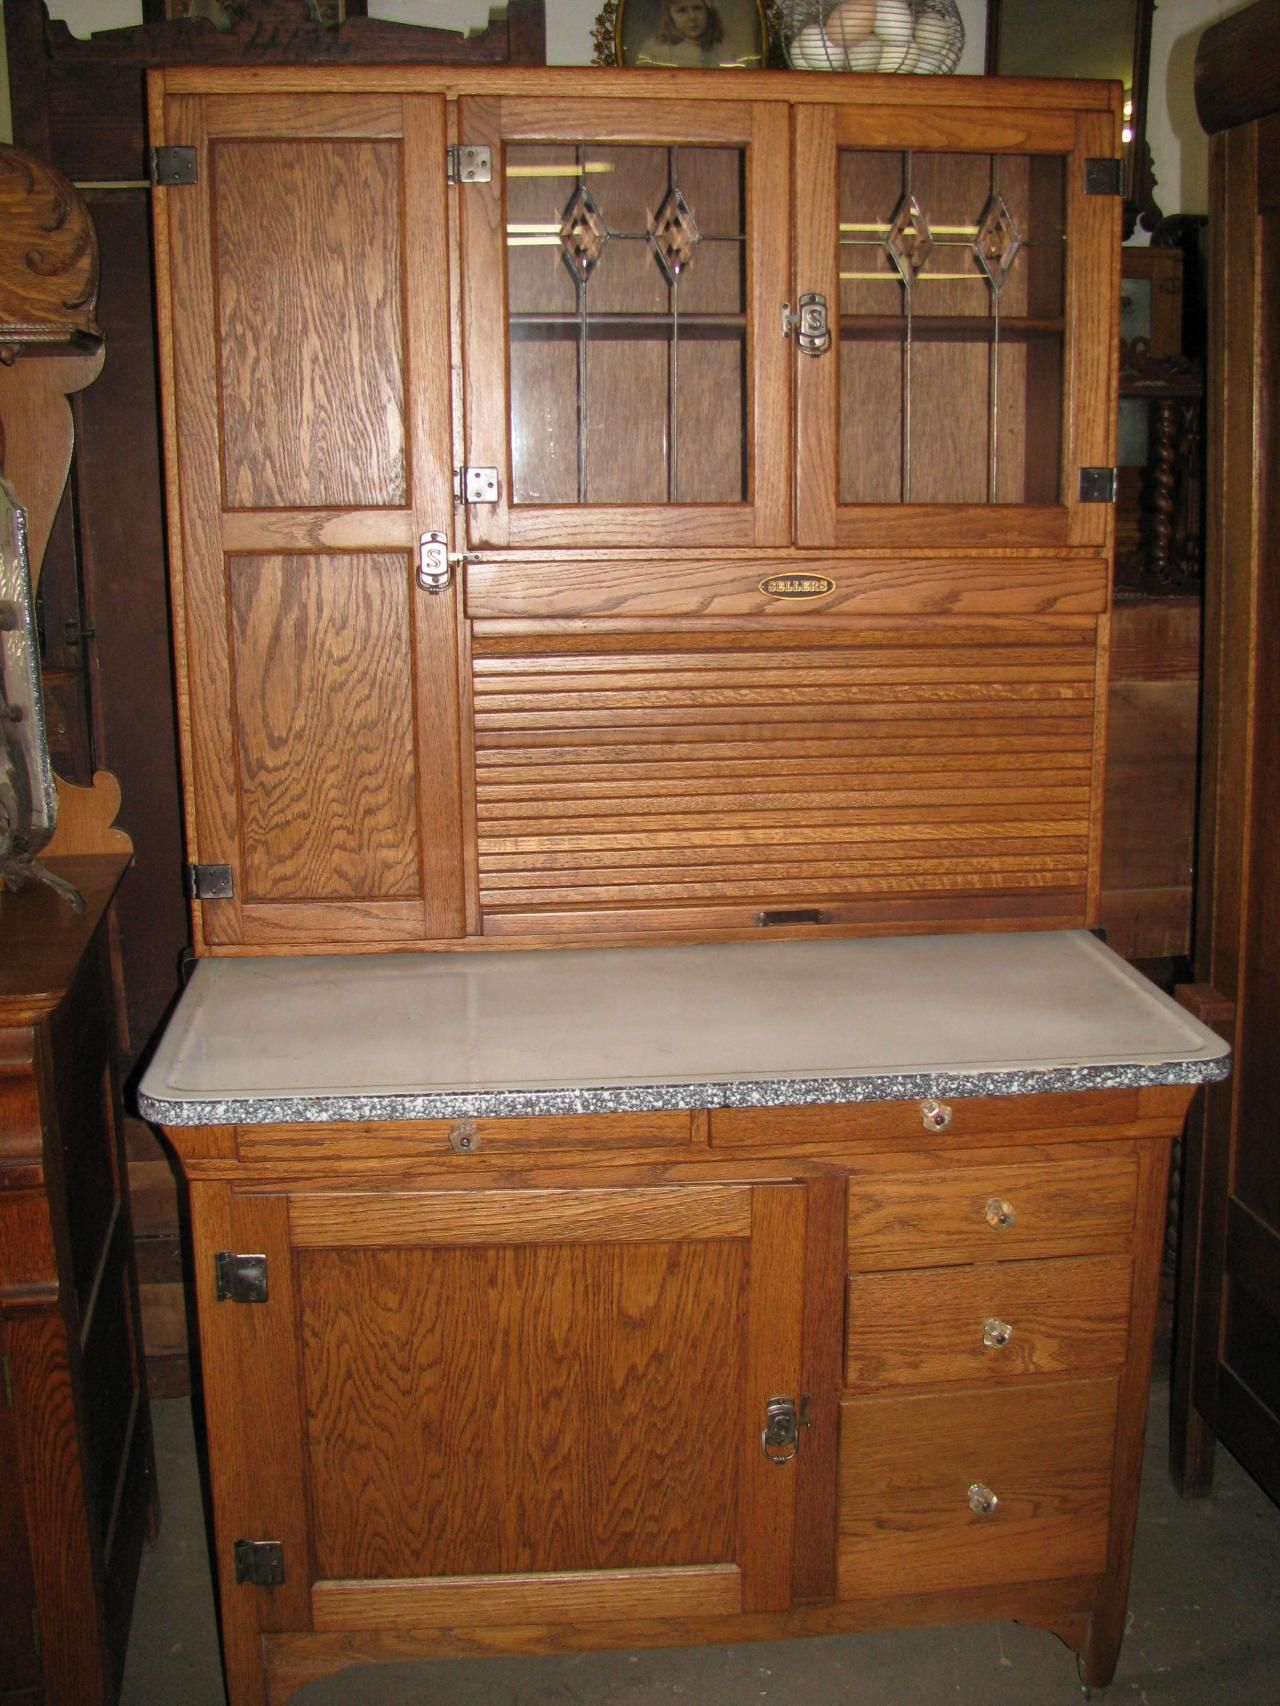 wilson kitchen cabinet hoosier deep sink sellers bakers circa 1917 1920 w leaded